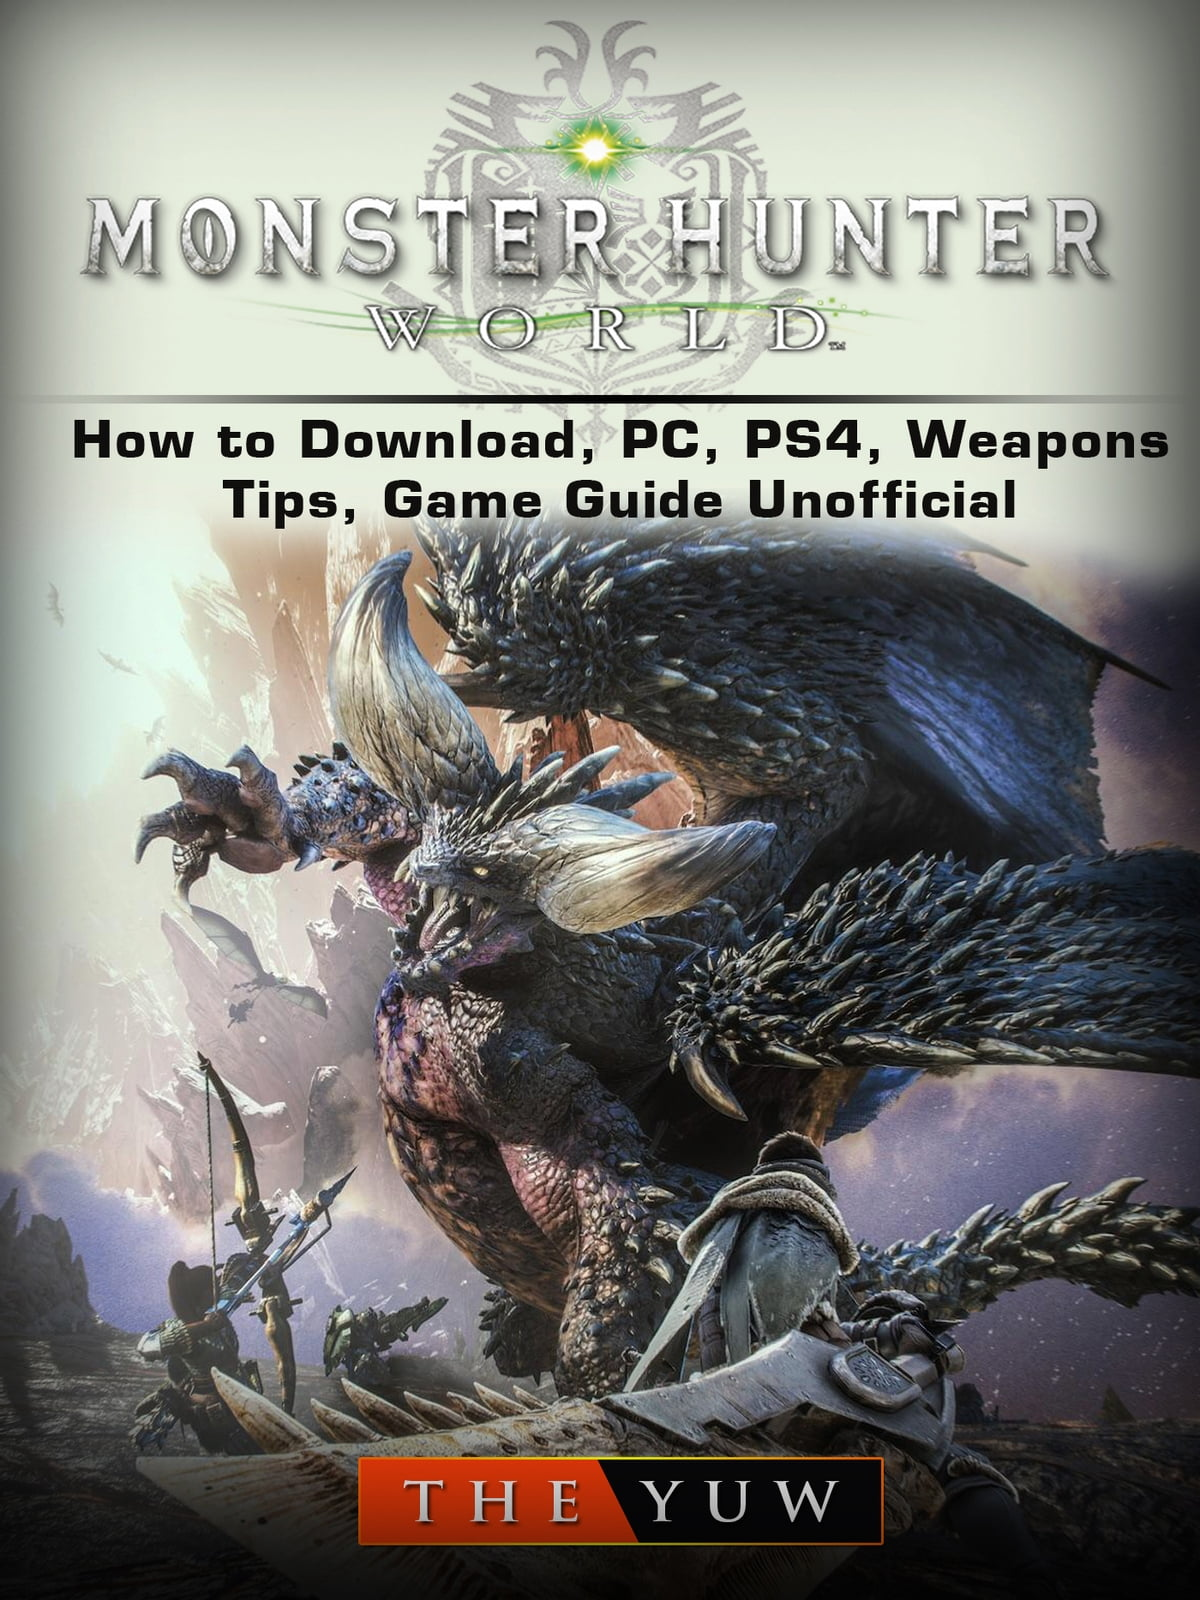 Monster hunter world how to download, pc, ps4, weapons, tips, game.